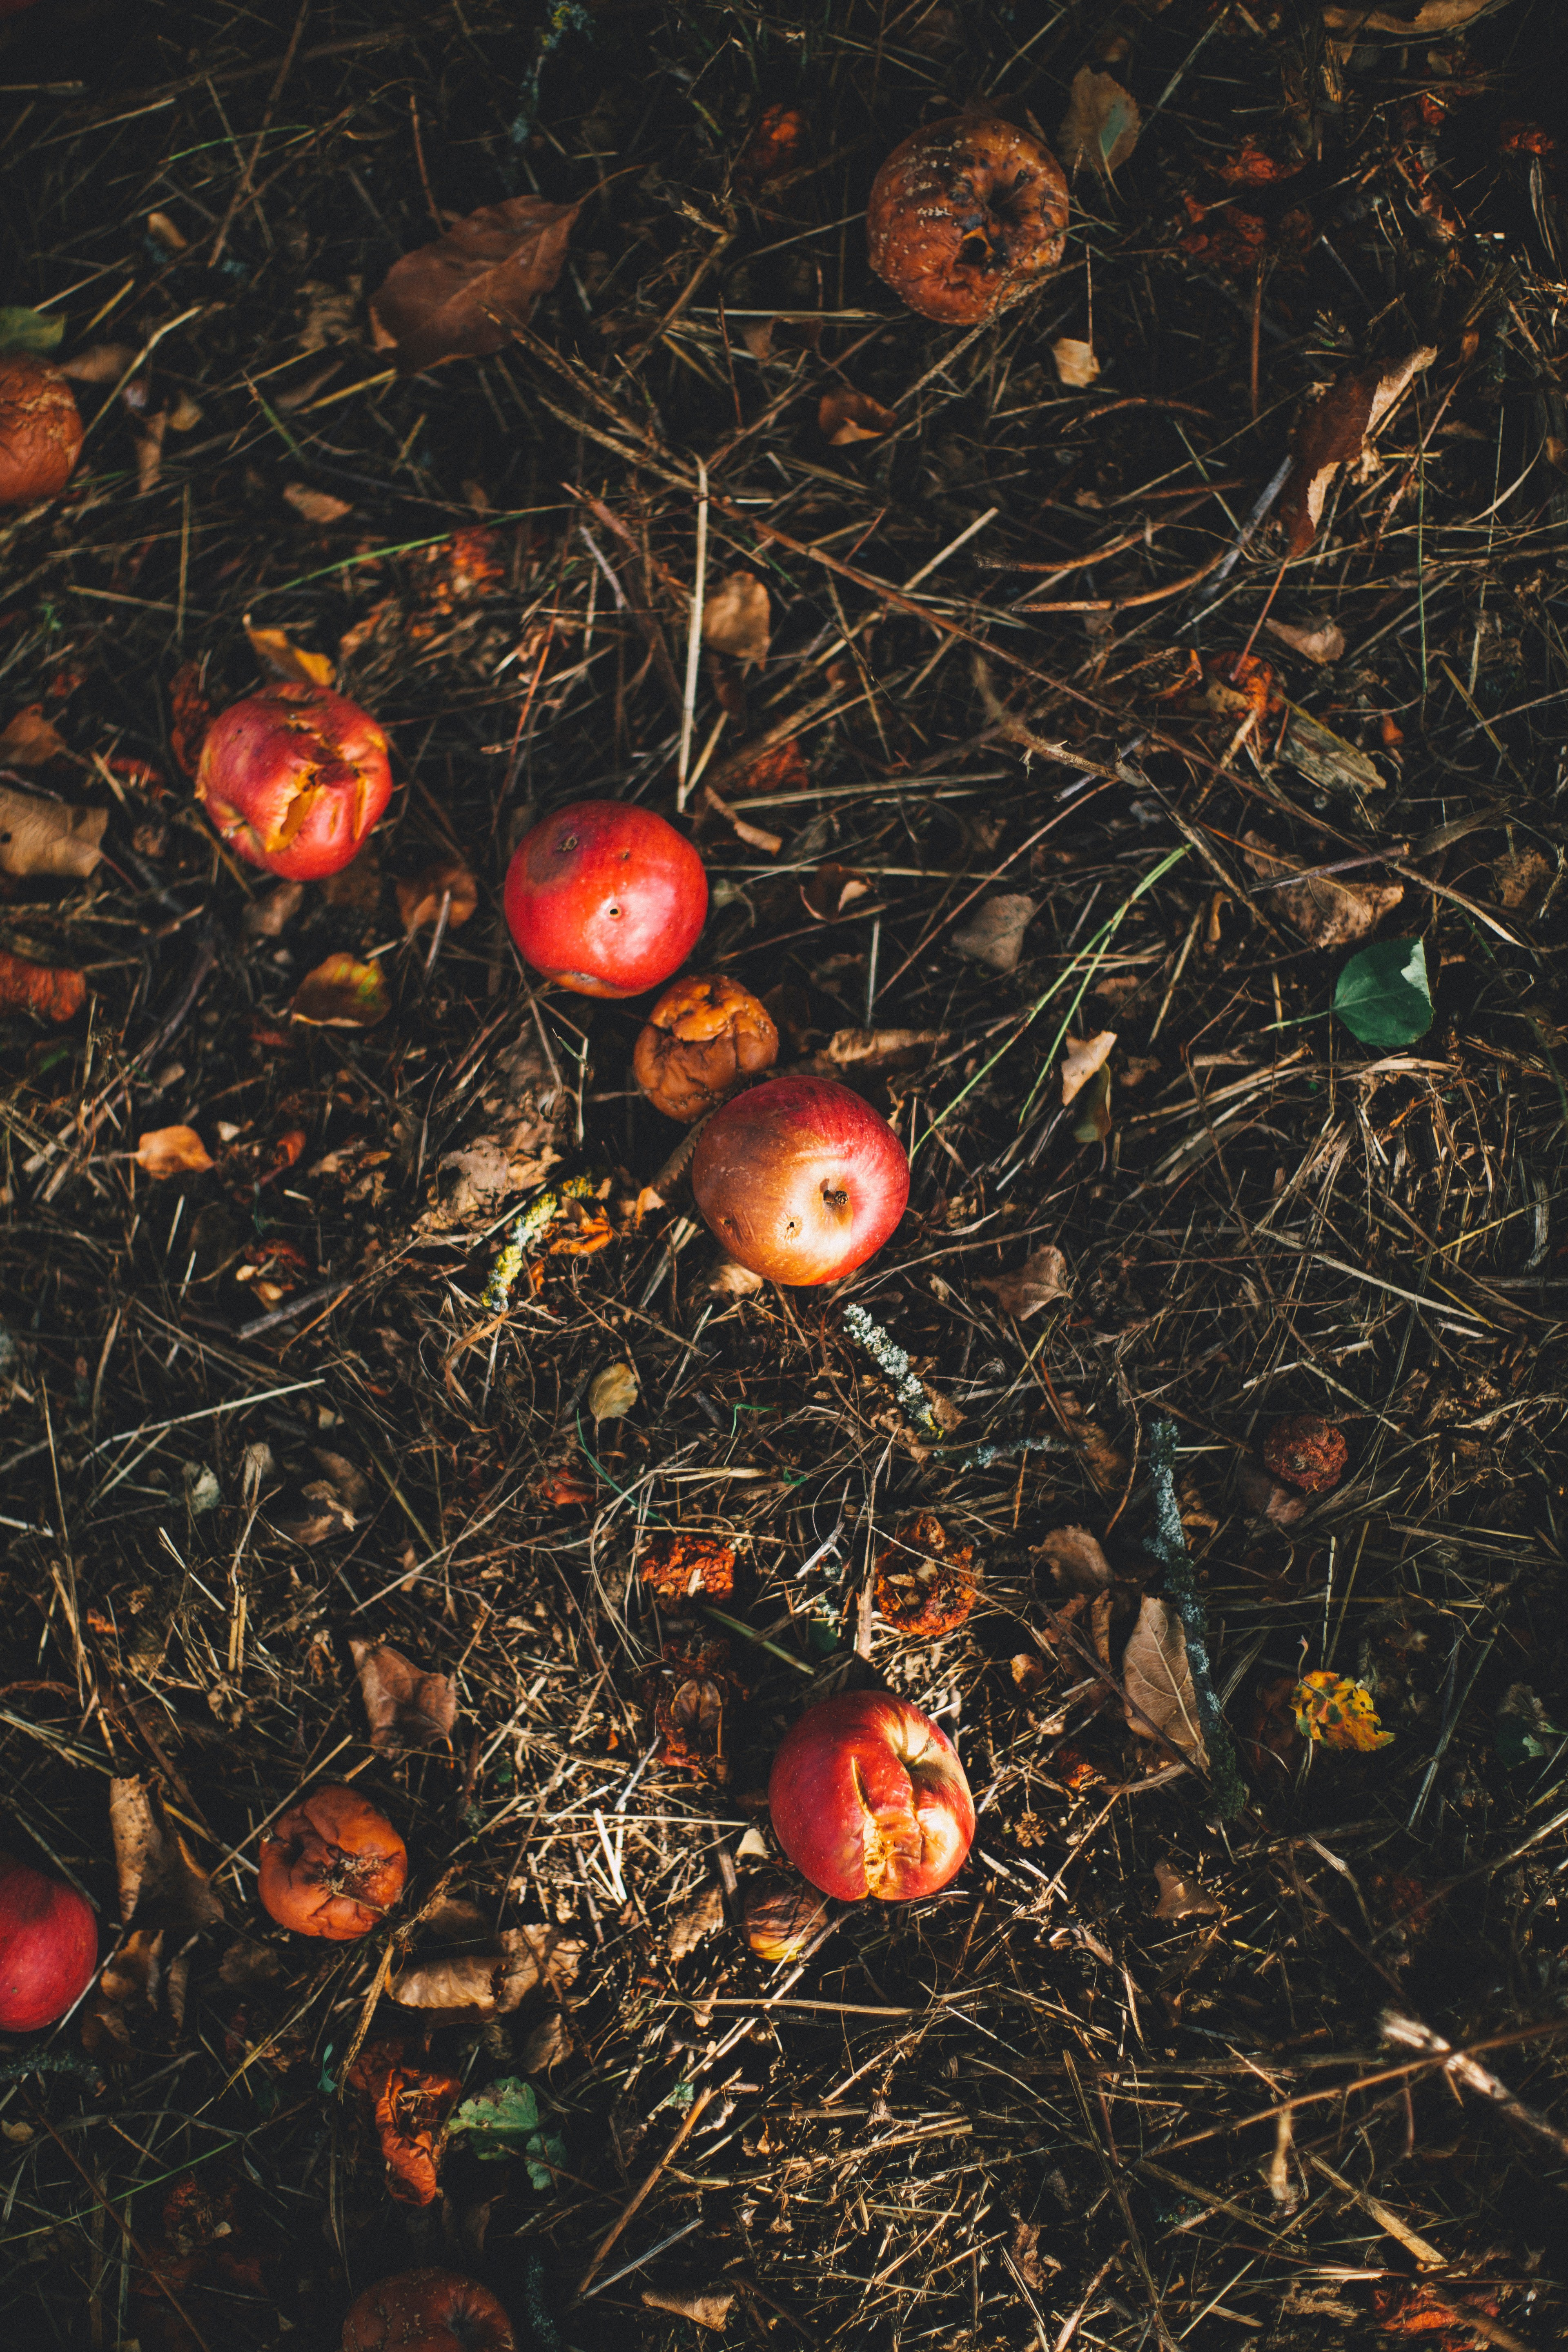 Rotting red apples sitting on top of hay and dirt.